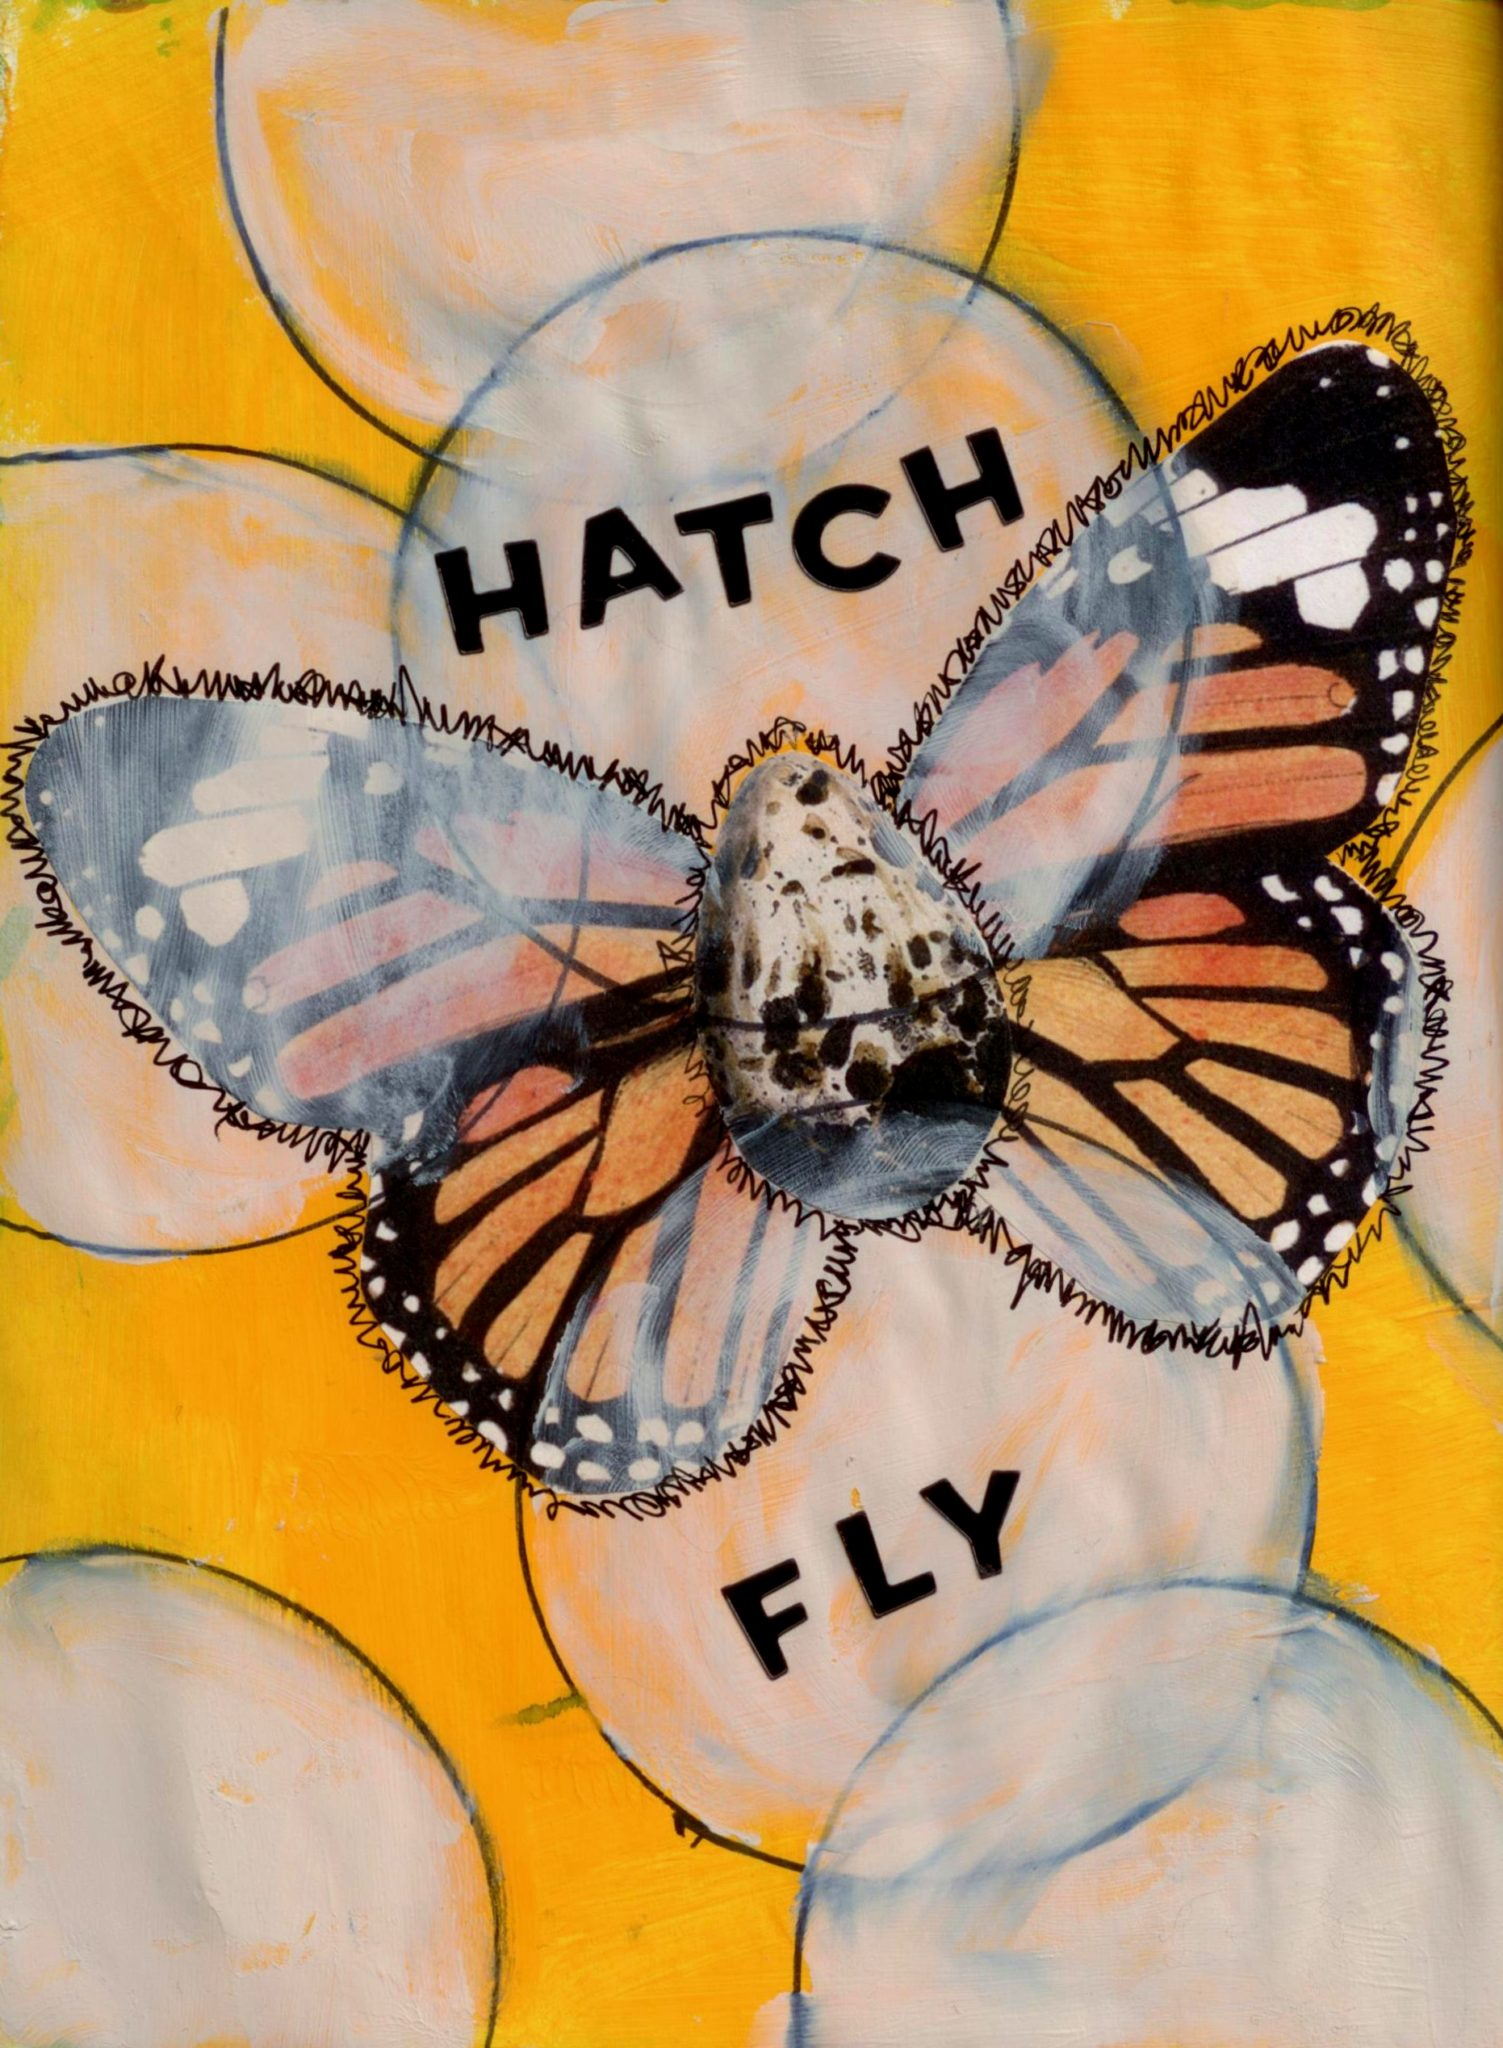 Hatch and Fly, mixed media collage by Courtney Putnam